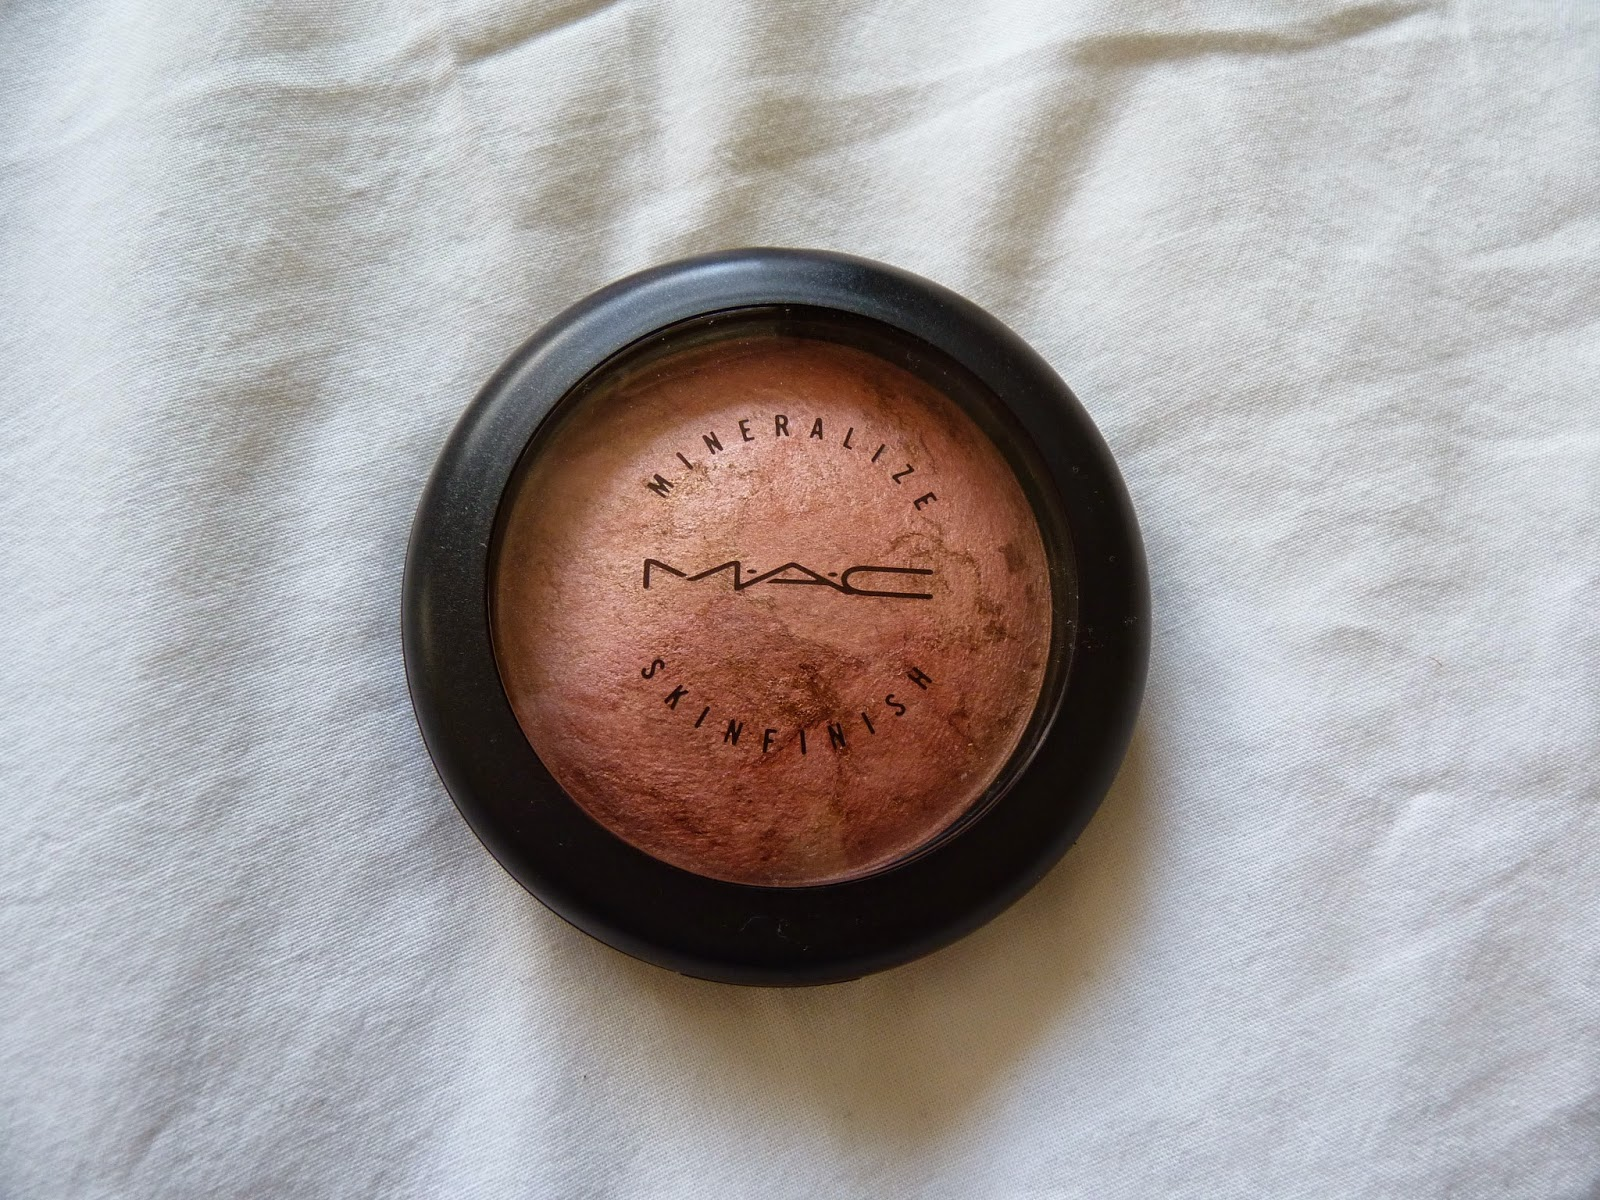 MAC Mineralize Skin Finish MSF Stereo Rose Blush Highlight